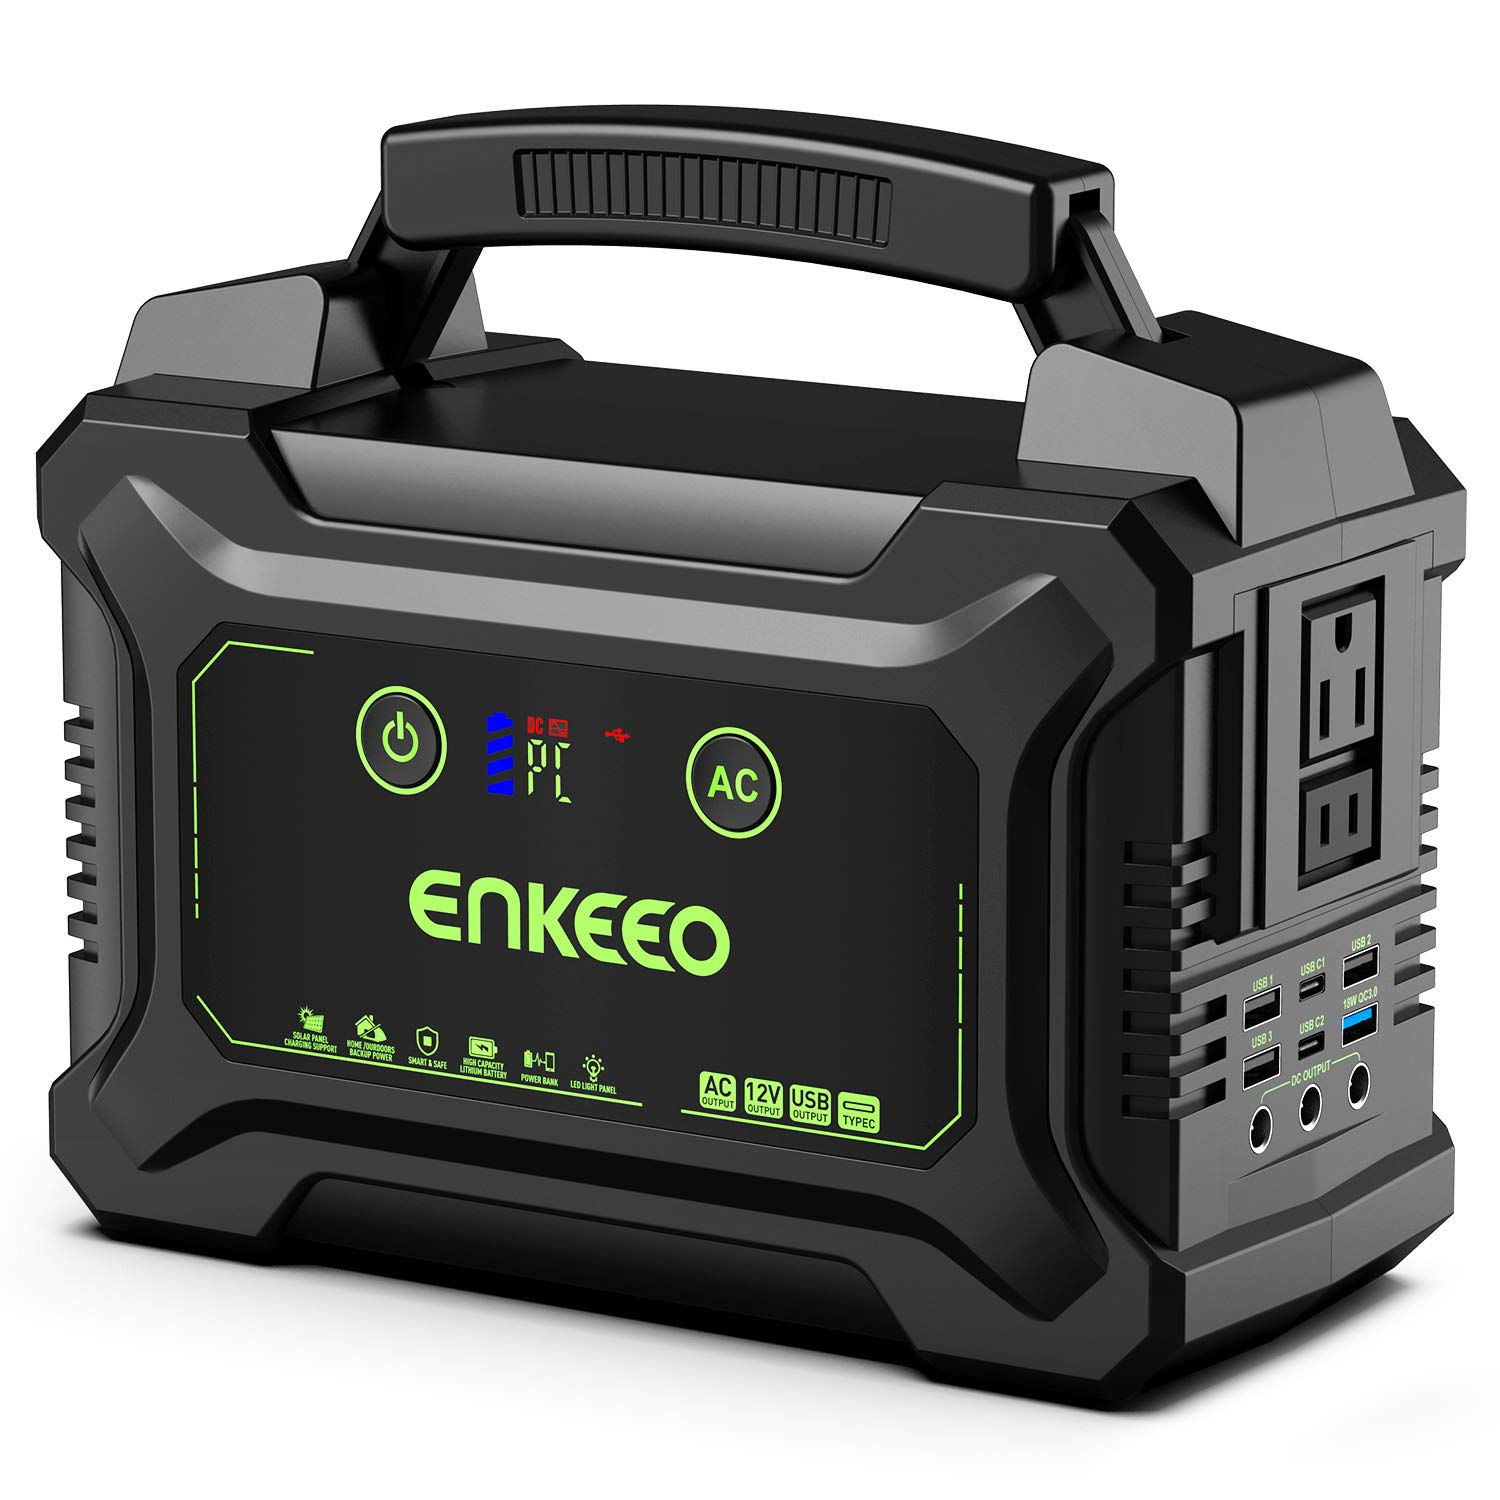 ENKEEO 222Wh Portable Power Station with Rechargeable Lithium-ion Battery, Power Generator with 110V/200W AC Outlet, 15V/3A Output, Easy Read LCD Display and LED Light for Camping and Emergency Use by ENKEEO